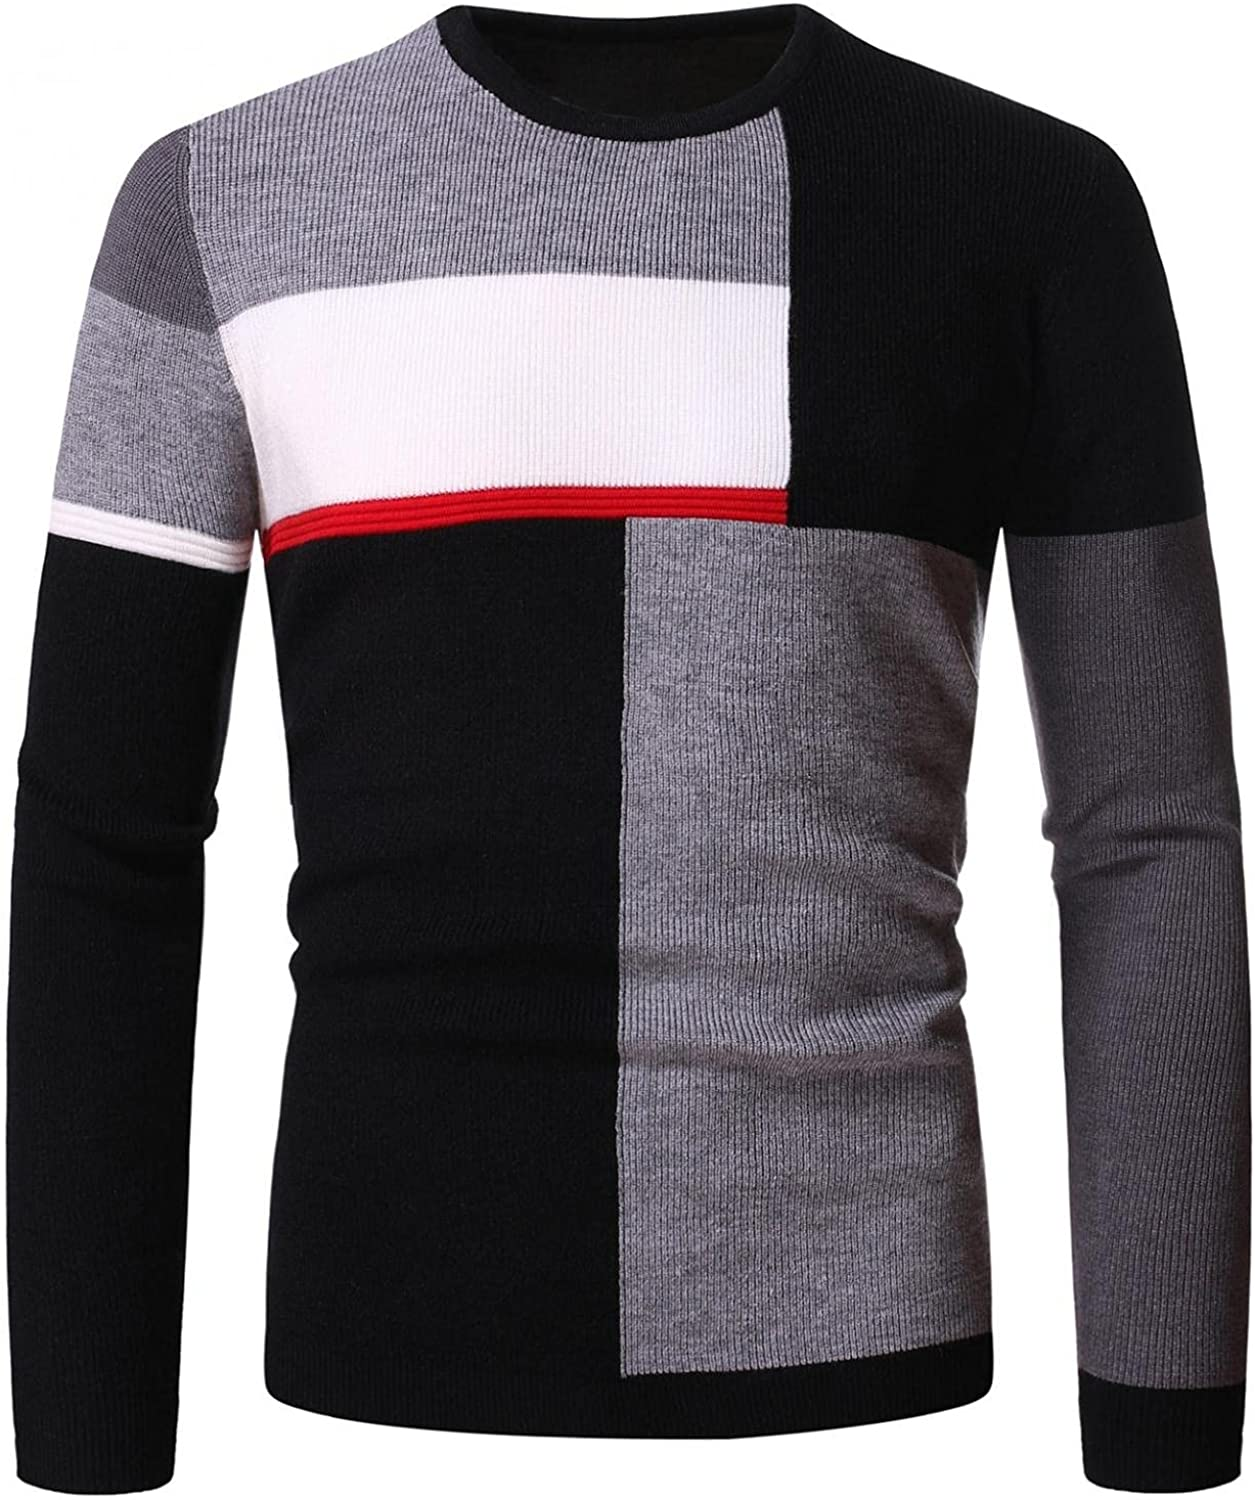 FUNEY Mens Vintage Oversize Knitted Sweater Color Block Striped Long Sleeve Round Neck Knitted Pullover Jumper Fall Sweaters